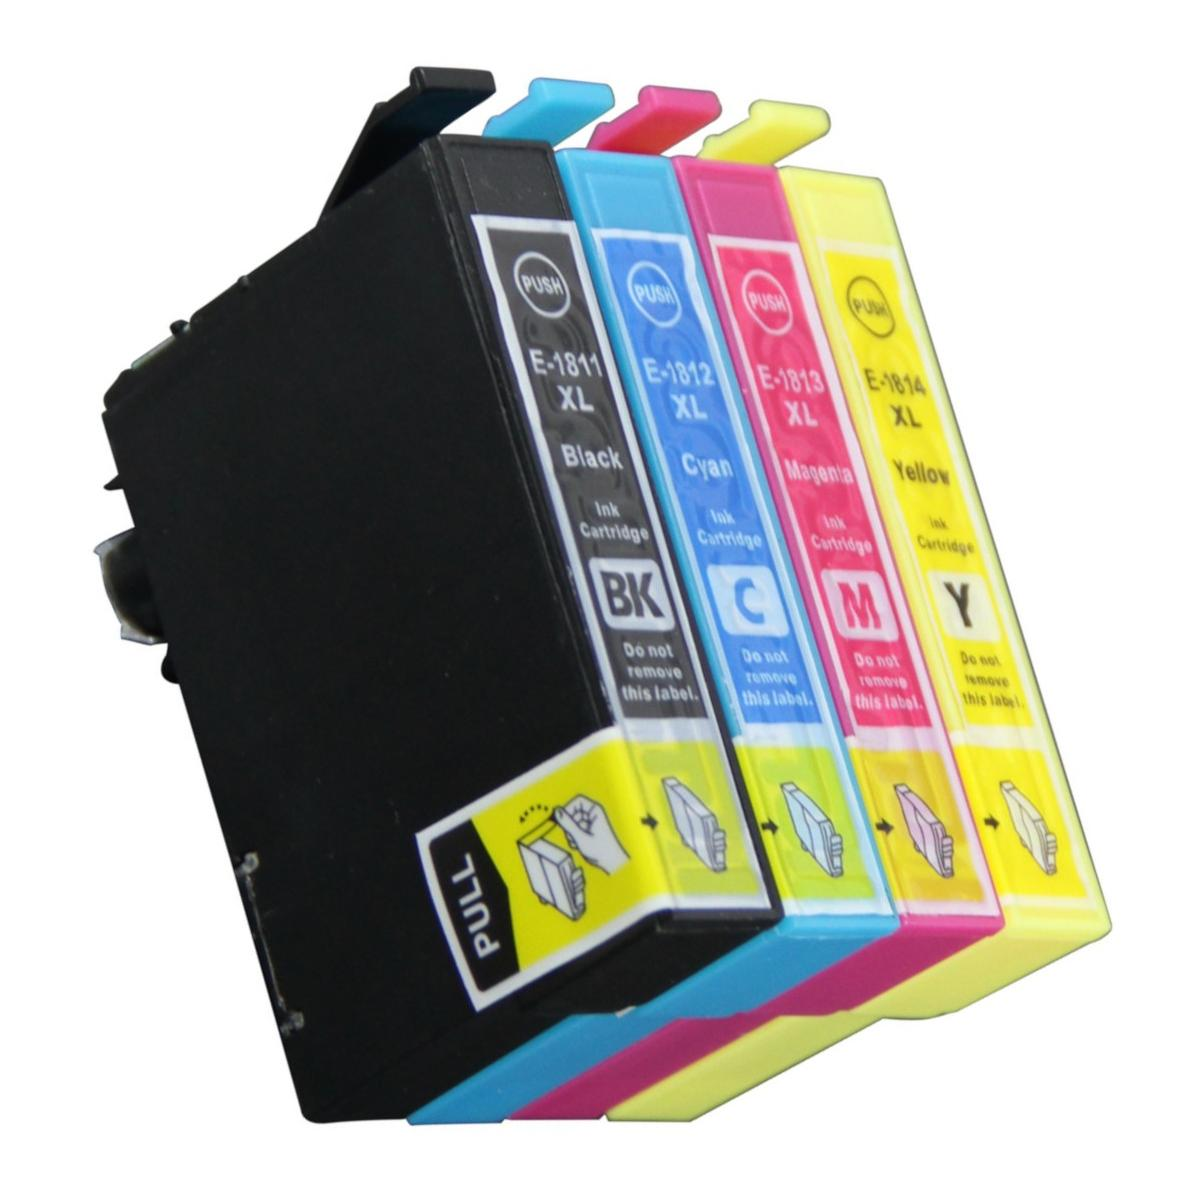 4 Ink Cartriges T18XL Model T 18XL T1811 T1812 T1813 T1814 Compatible With Epson Printers XP405W XP312 XP412 Xp313 Xp413